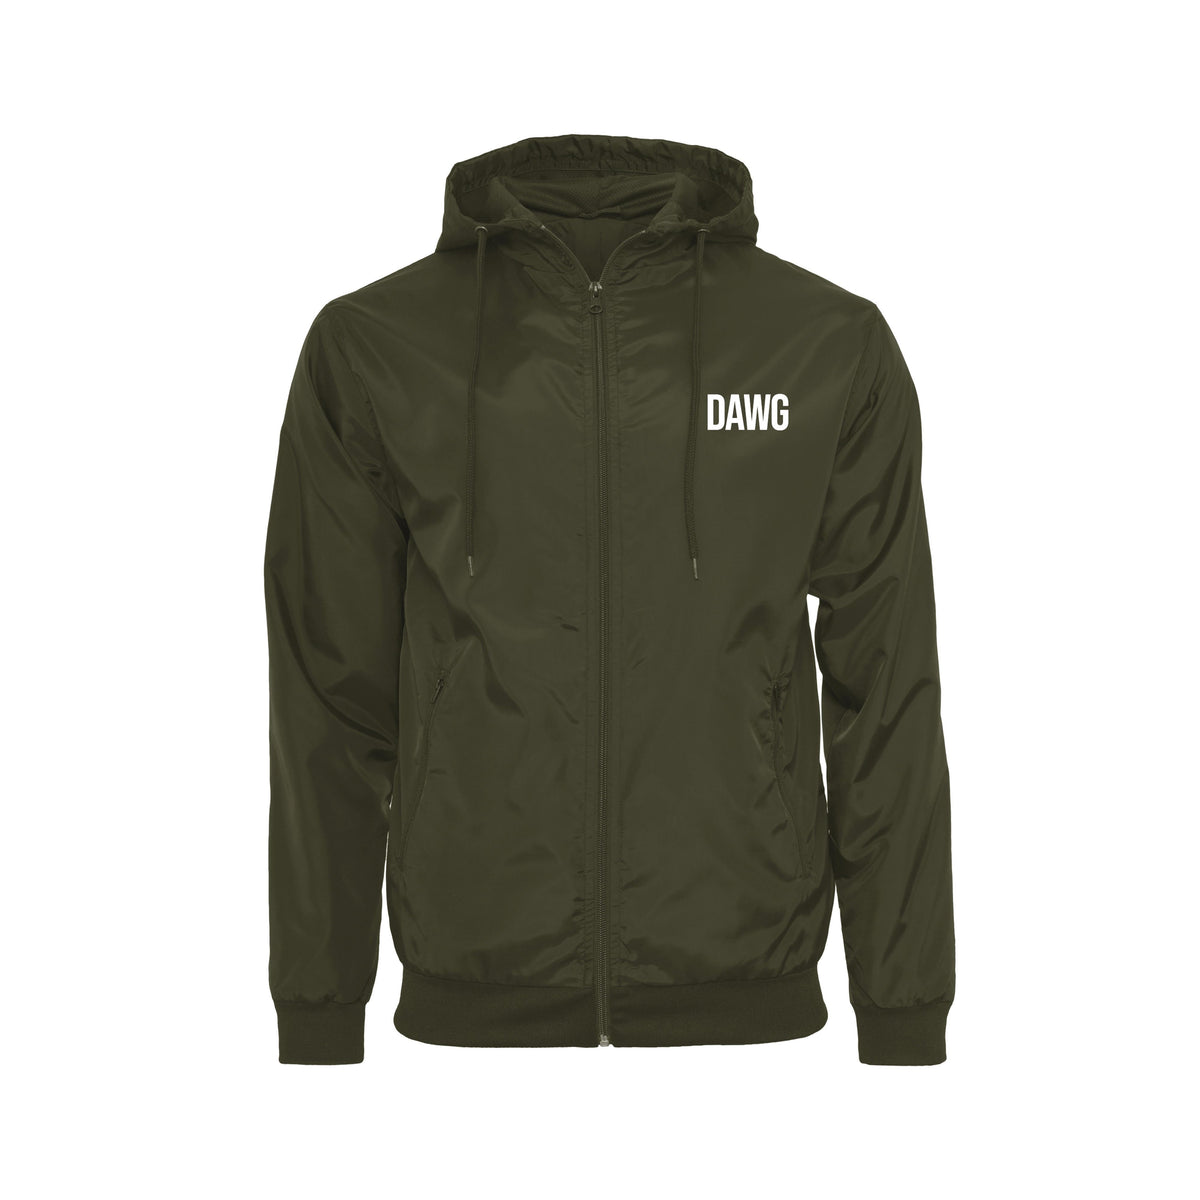 DAWG Compass Windrunner (BY016) - Front & Back Print DAWG